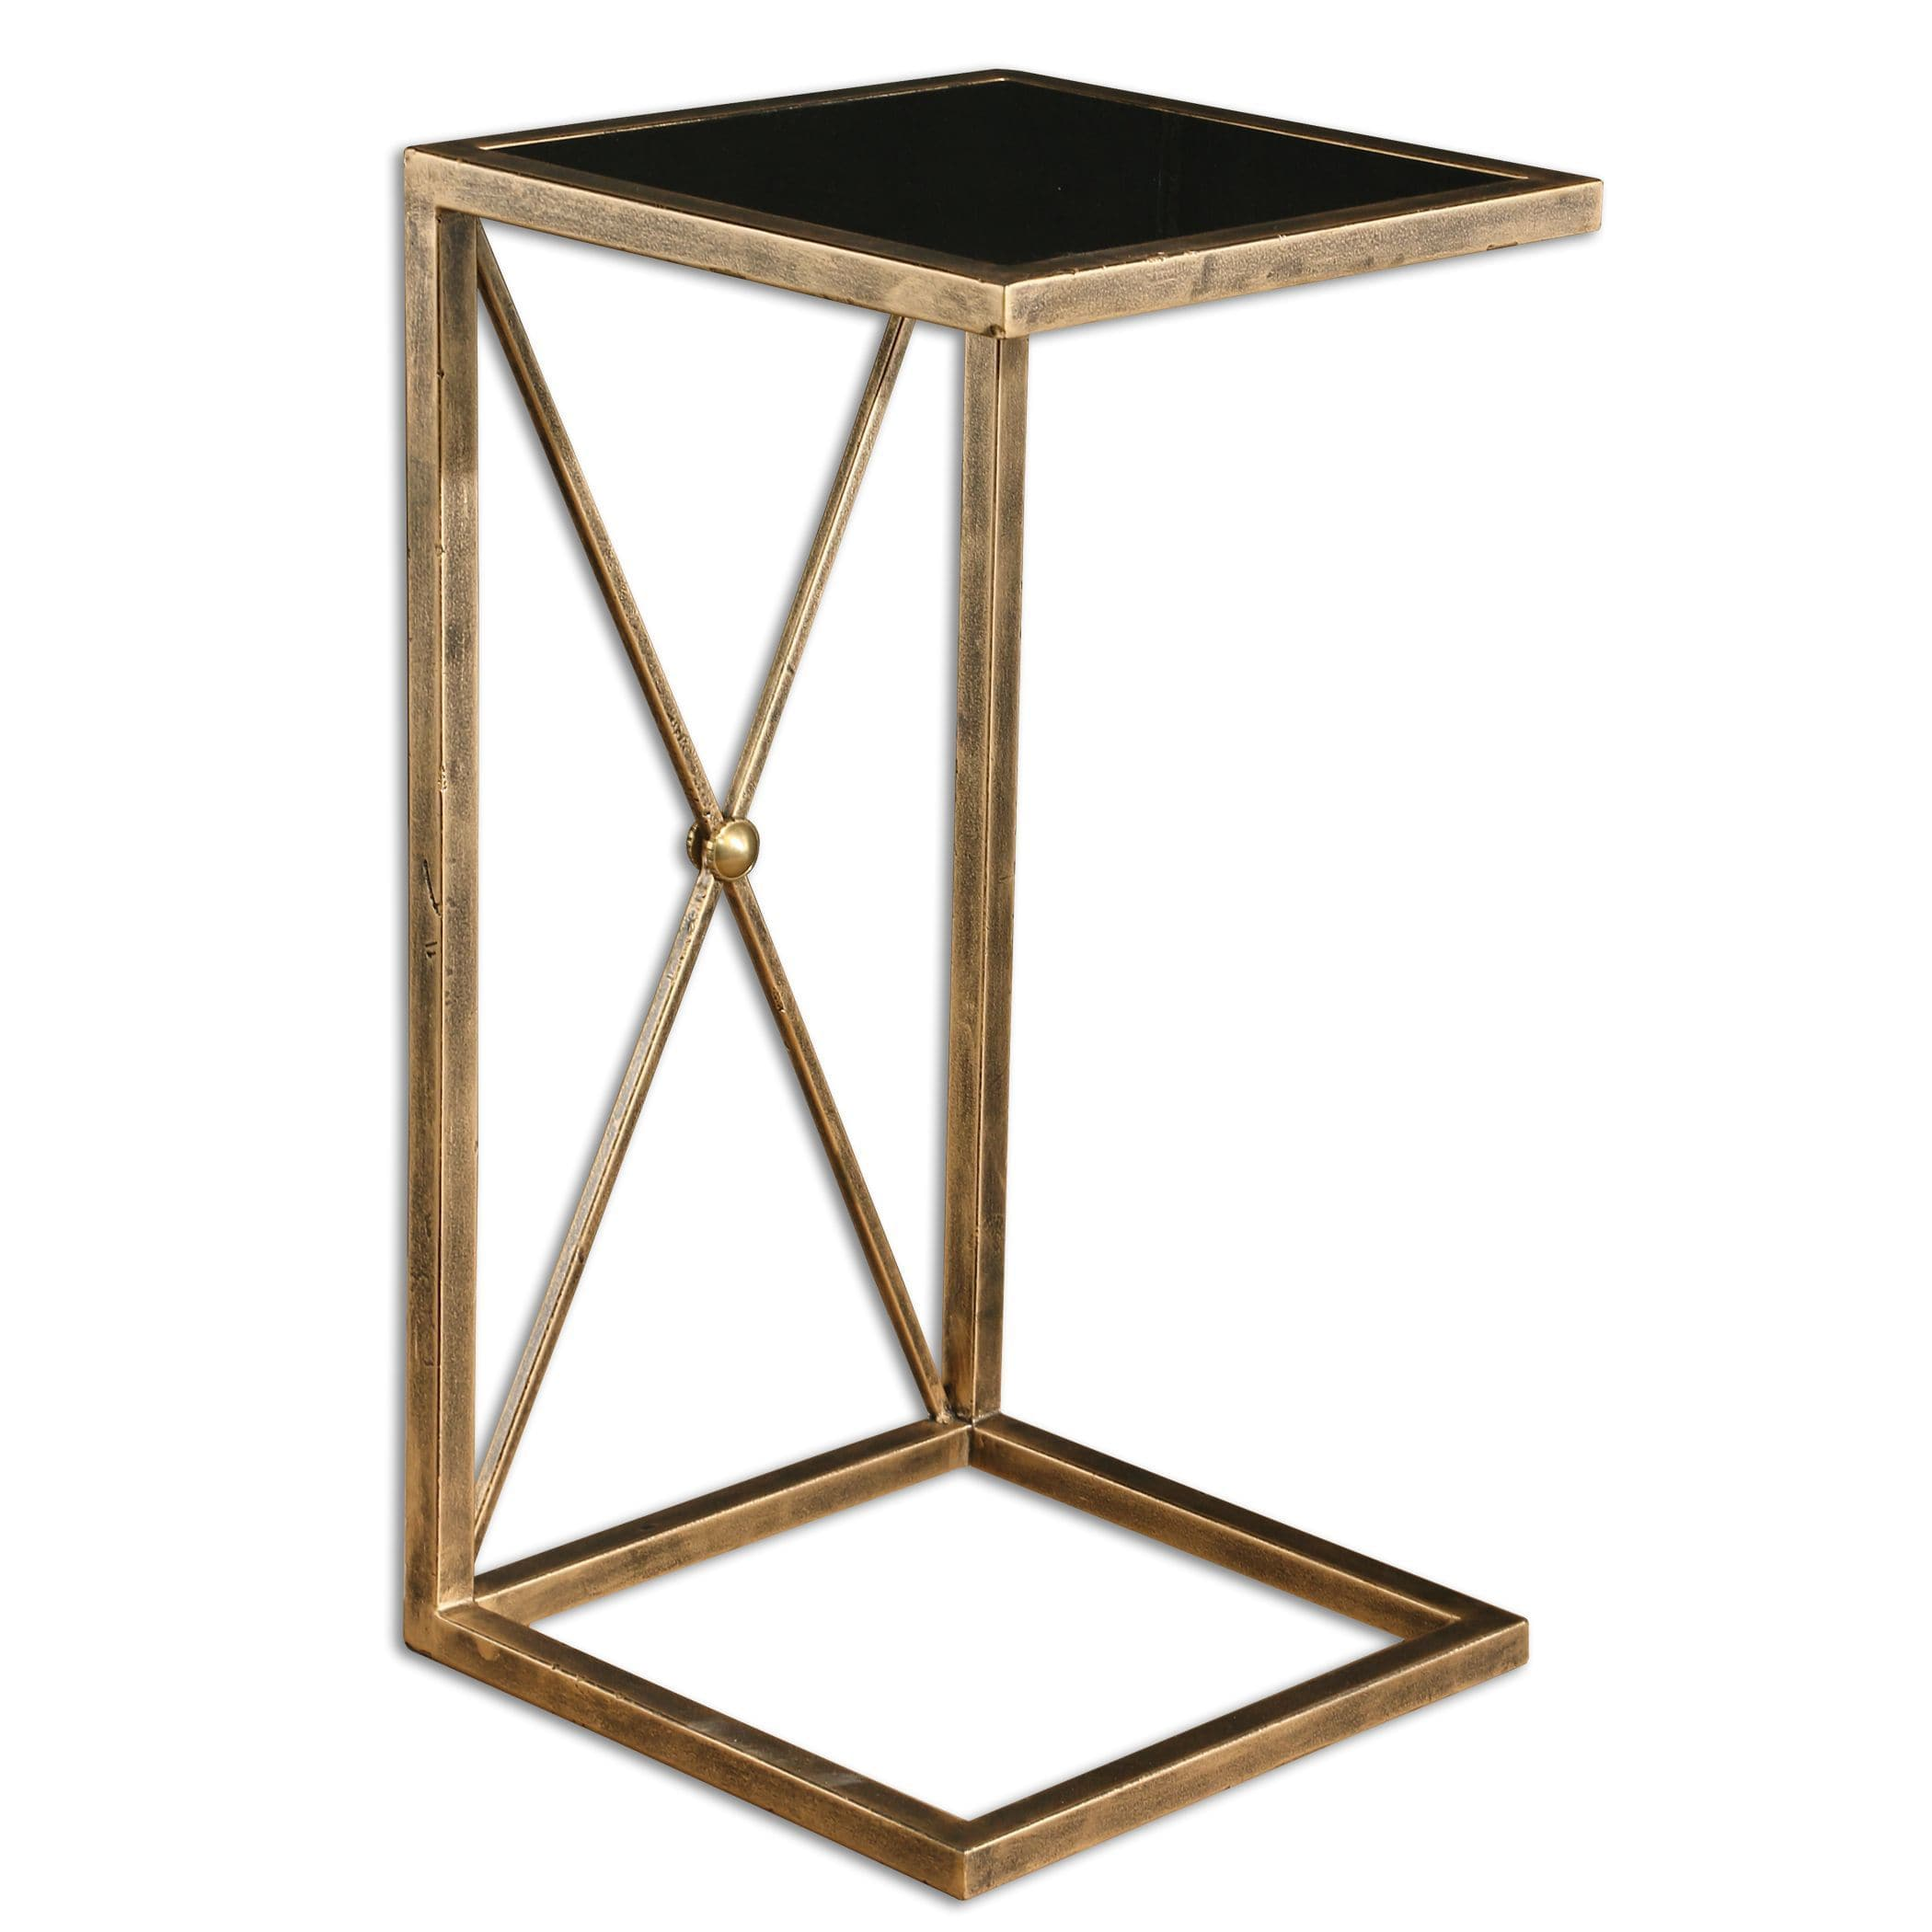 uttermost zafina gold side table free shipping today laton mirrored accent lucite cube pier one calgary marble iron coffee tablecloth with umbrella hole dining room linens